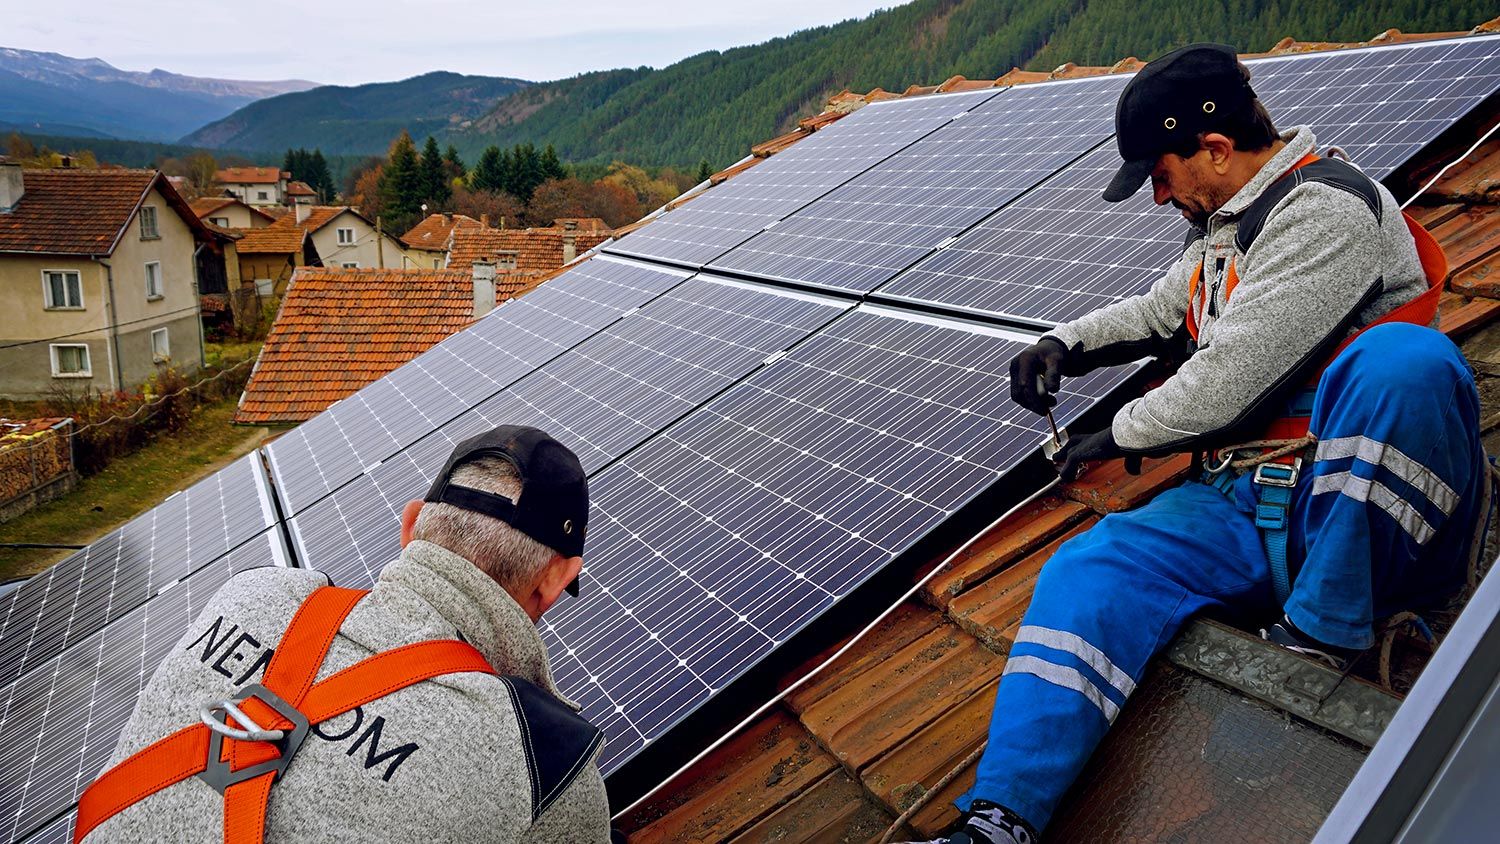 Installation of photovoltaic panels for solar power system